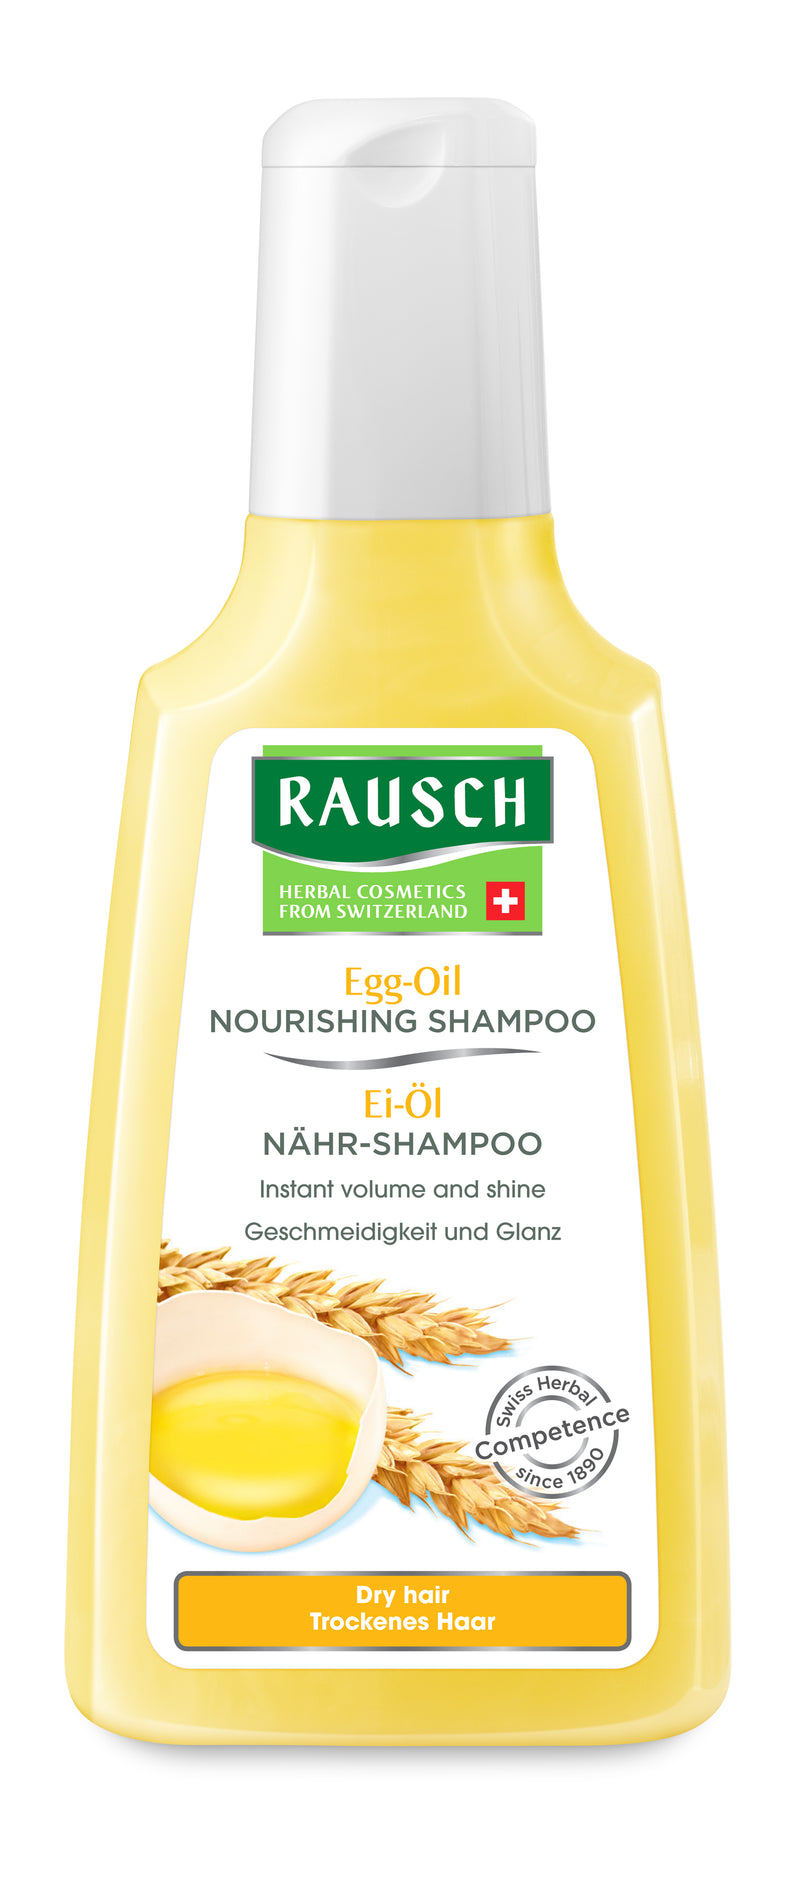 RAUSCH Egg-Oil Nourishing Shampoo For Dry Hair